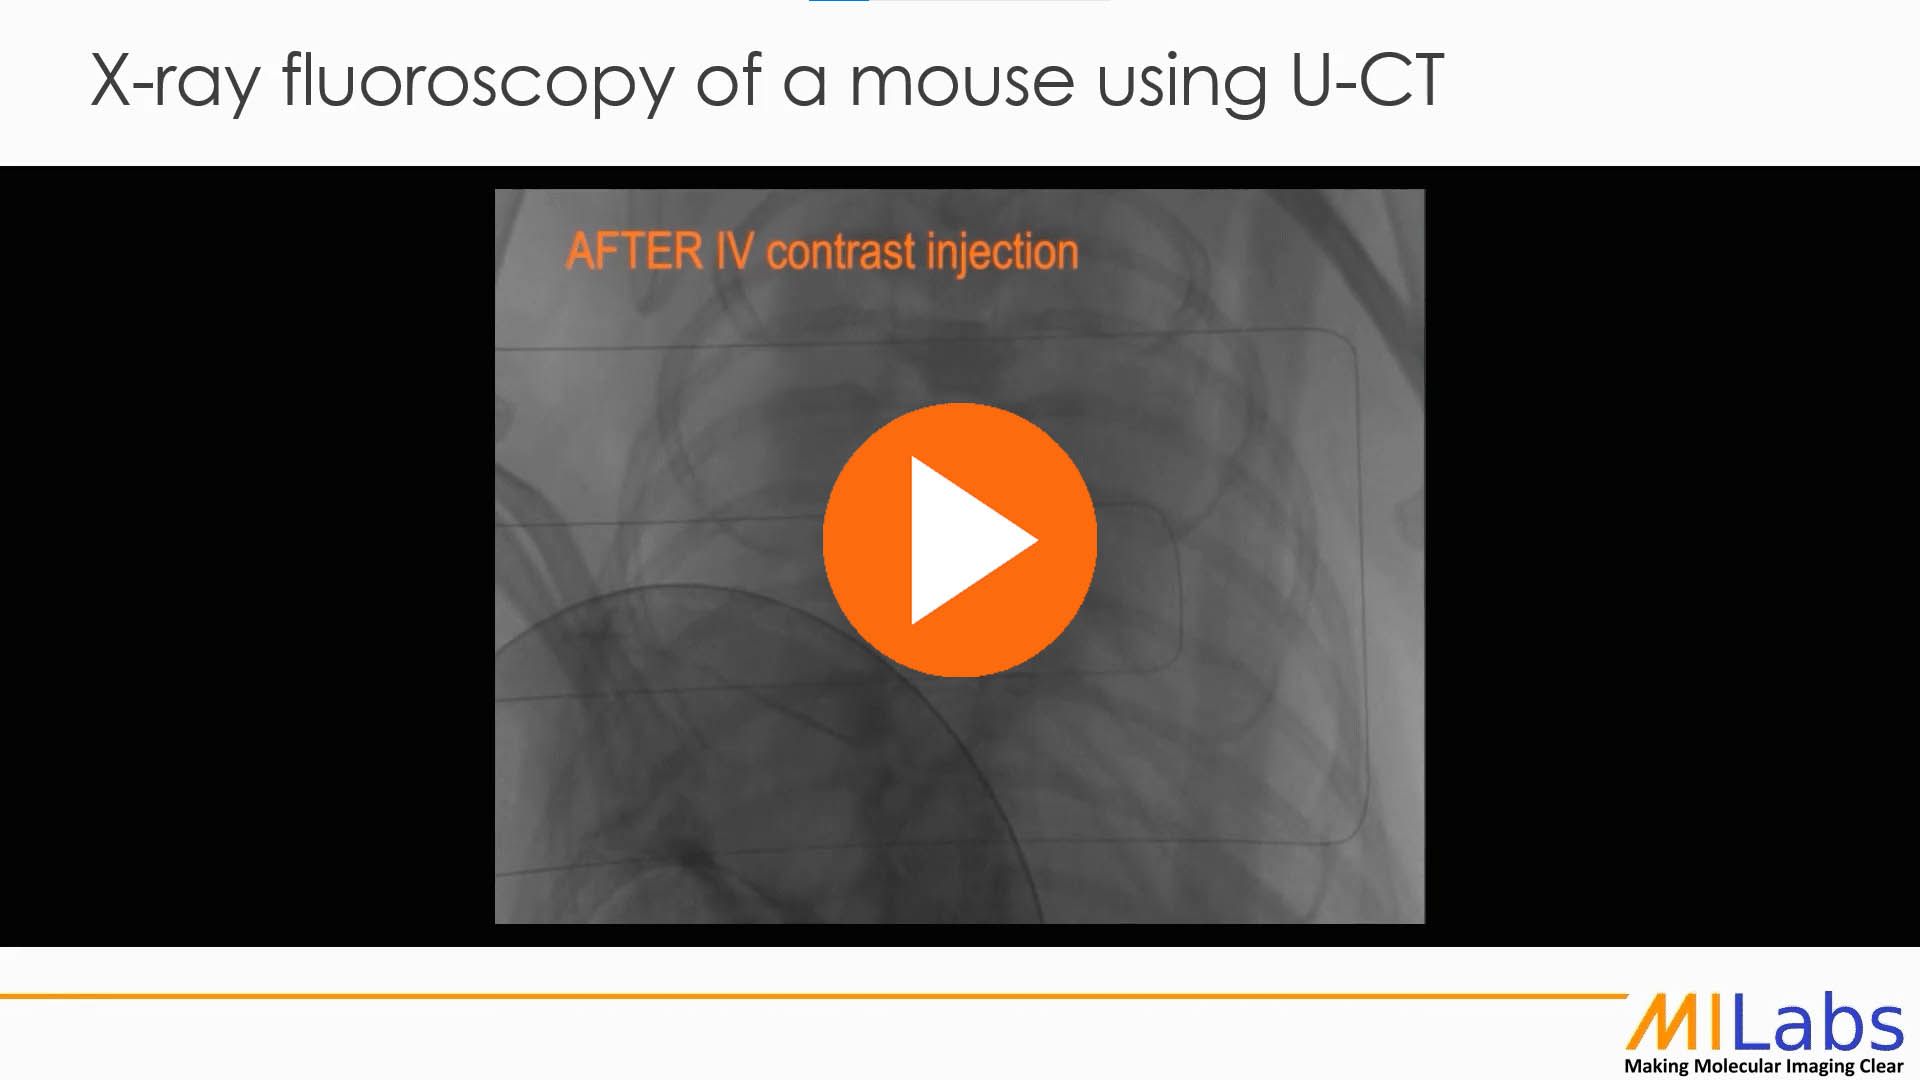 xray fluoroscopy of a mouse using microCT